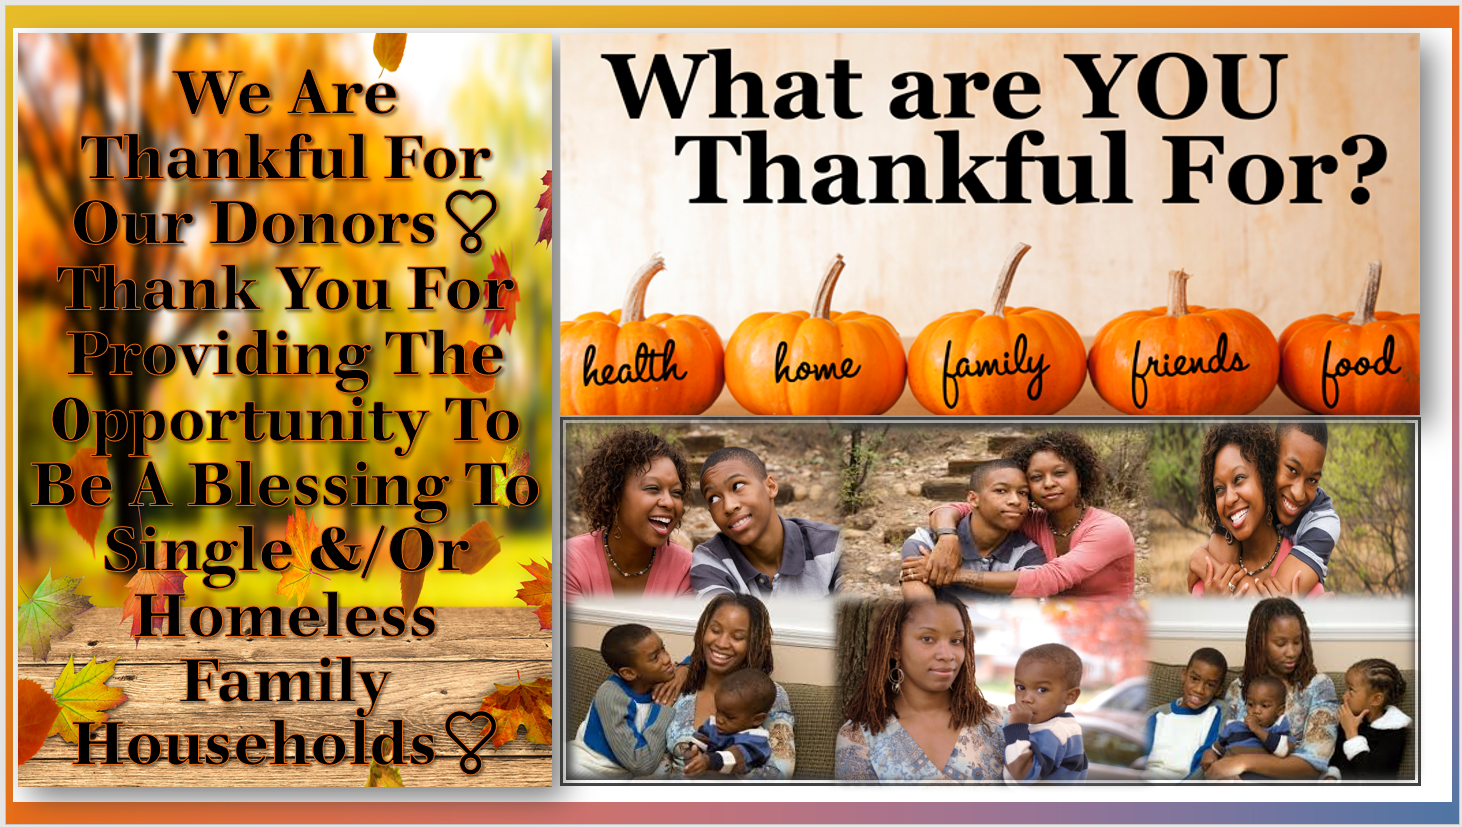 2019 GIVING THANKS For Our Donors